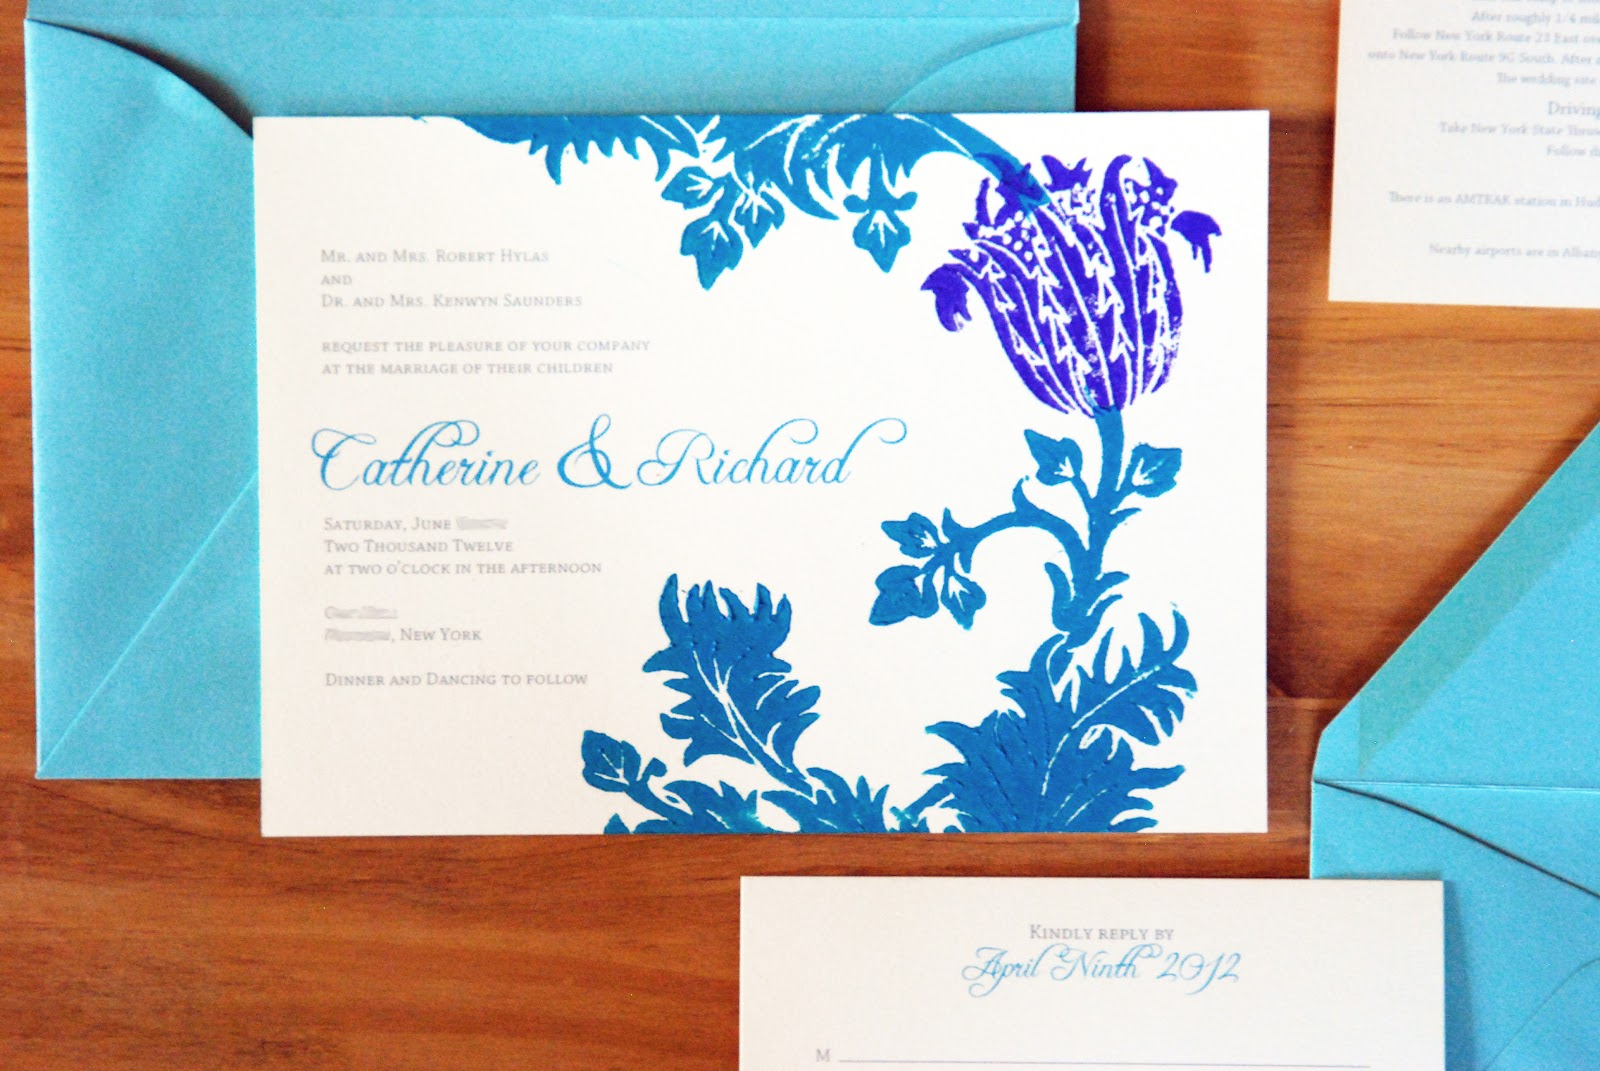 Katharine Watson: Introducing Custom Wedding Invitations!